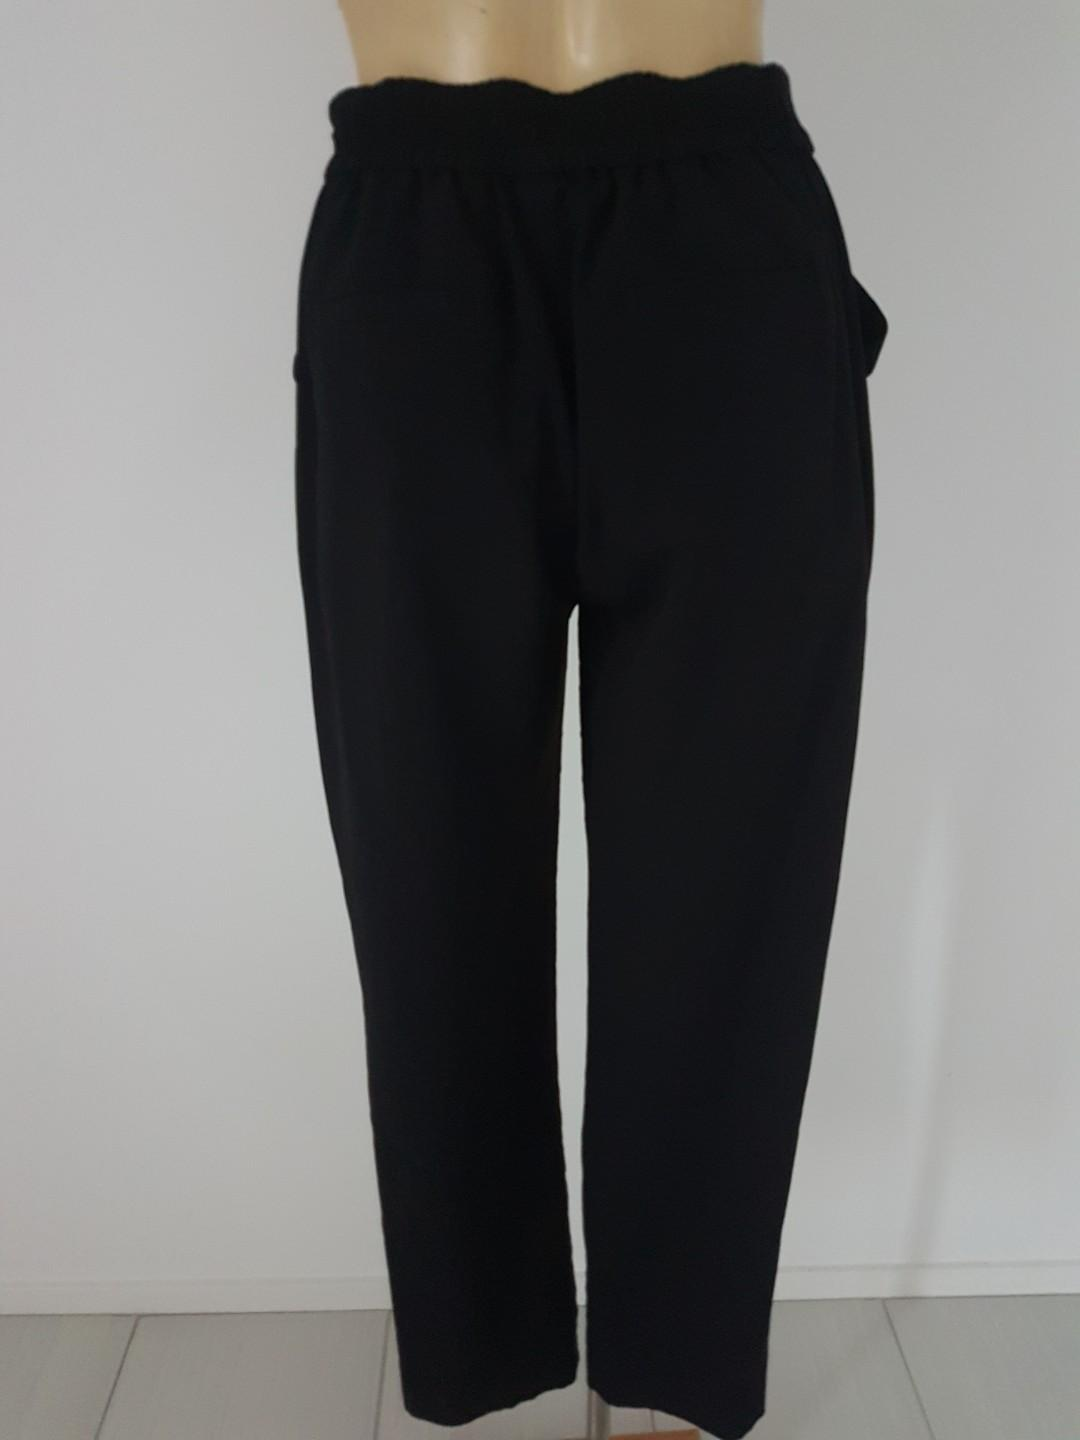 Country Road Size 6 Elastic Waist Black Pants with Pockets